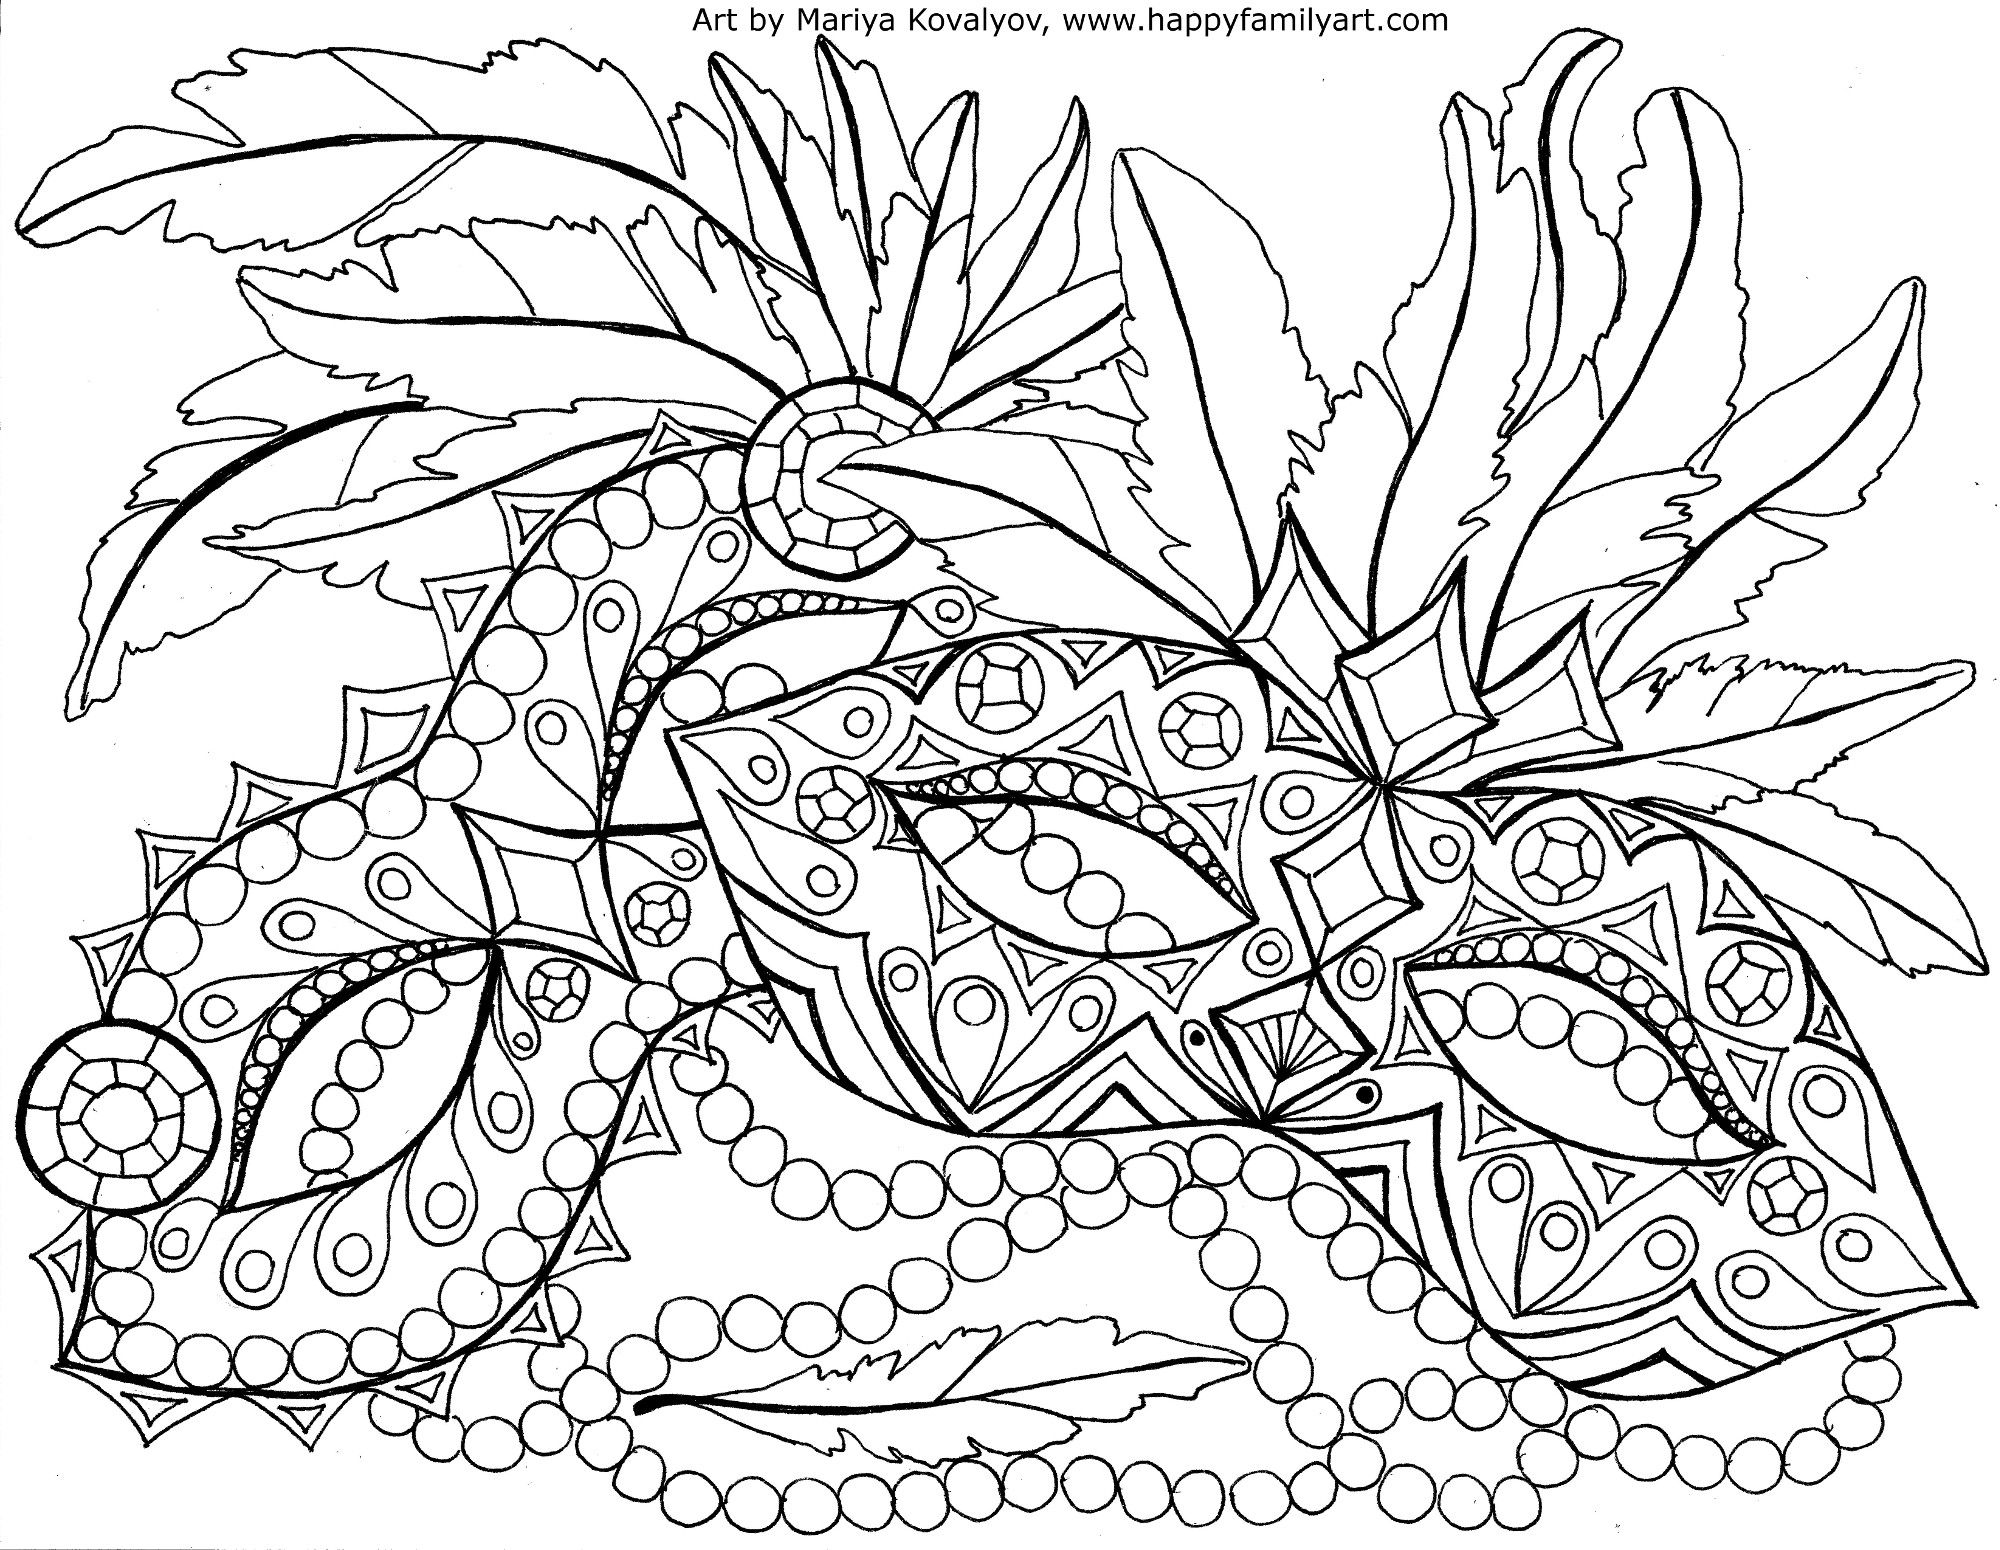 mardi gras masquerade colouring page for adults zentangles